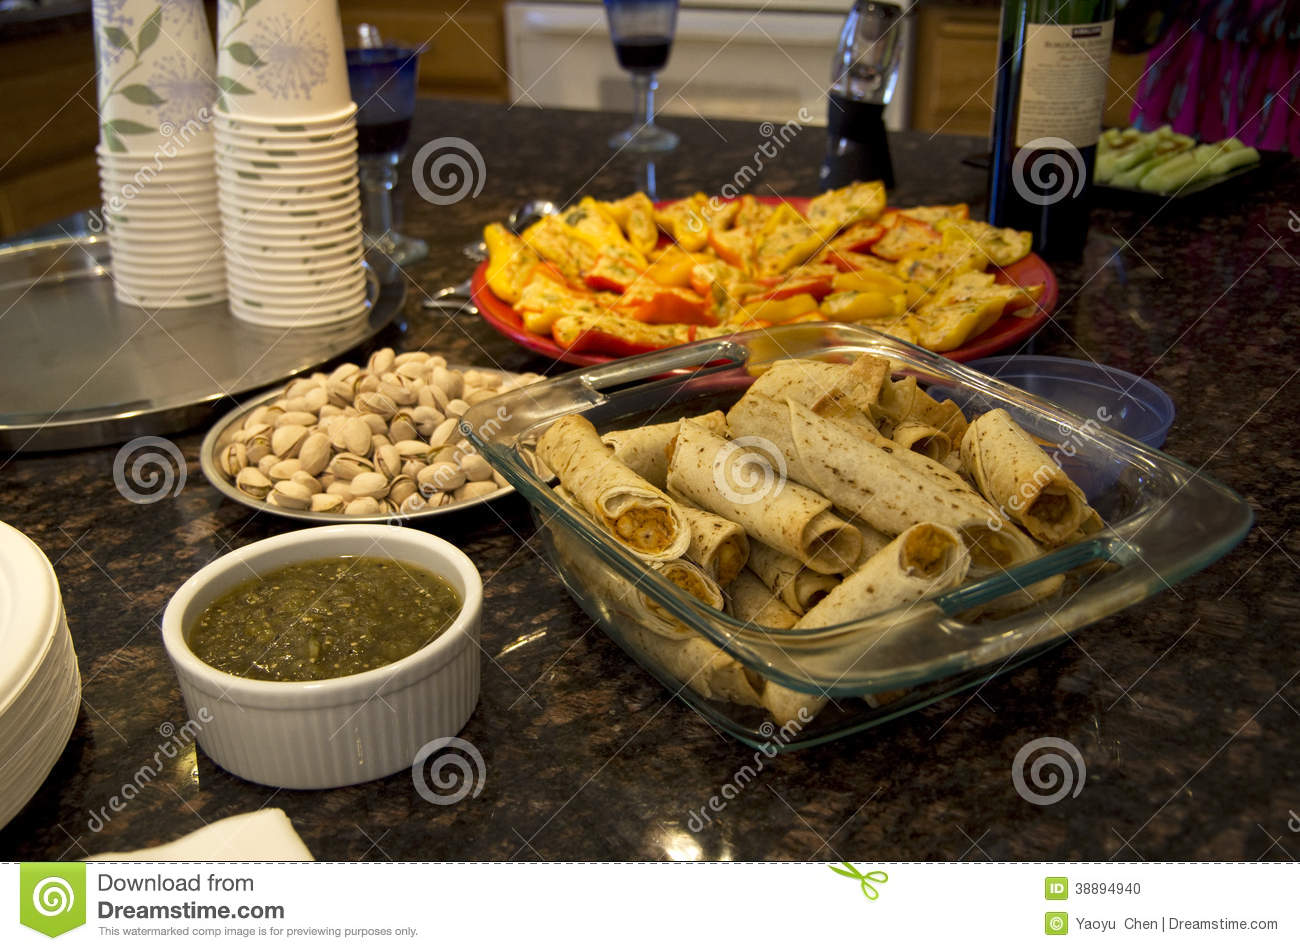 American home party food stock photo image 38894940 for House party recipes